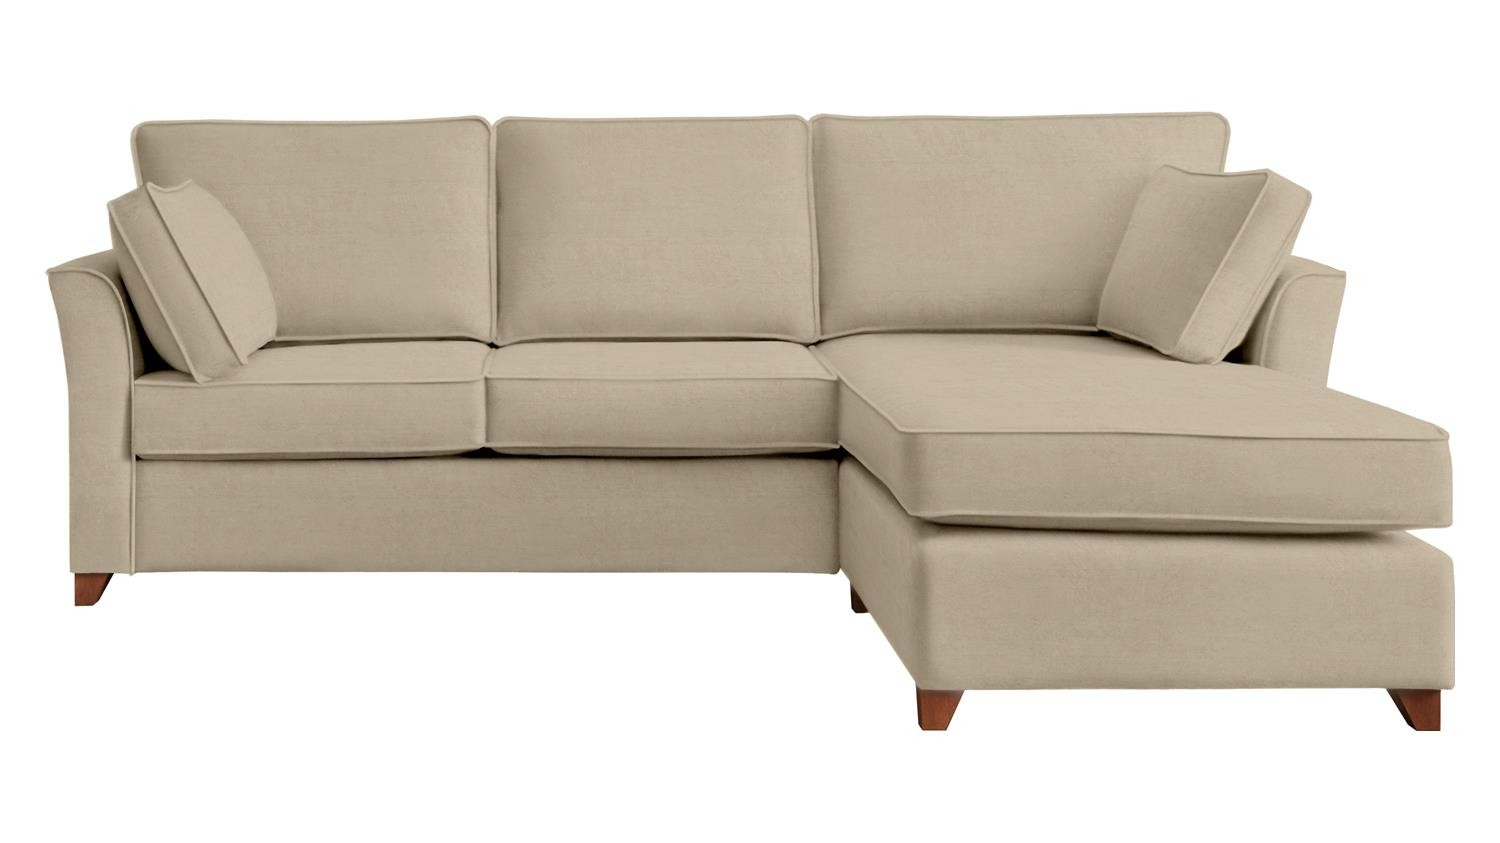 The Bishopstrow 5 Seater Chaise Storage Sofa Bed